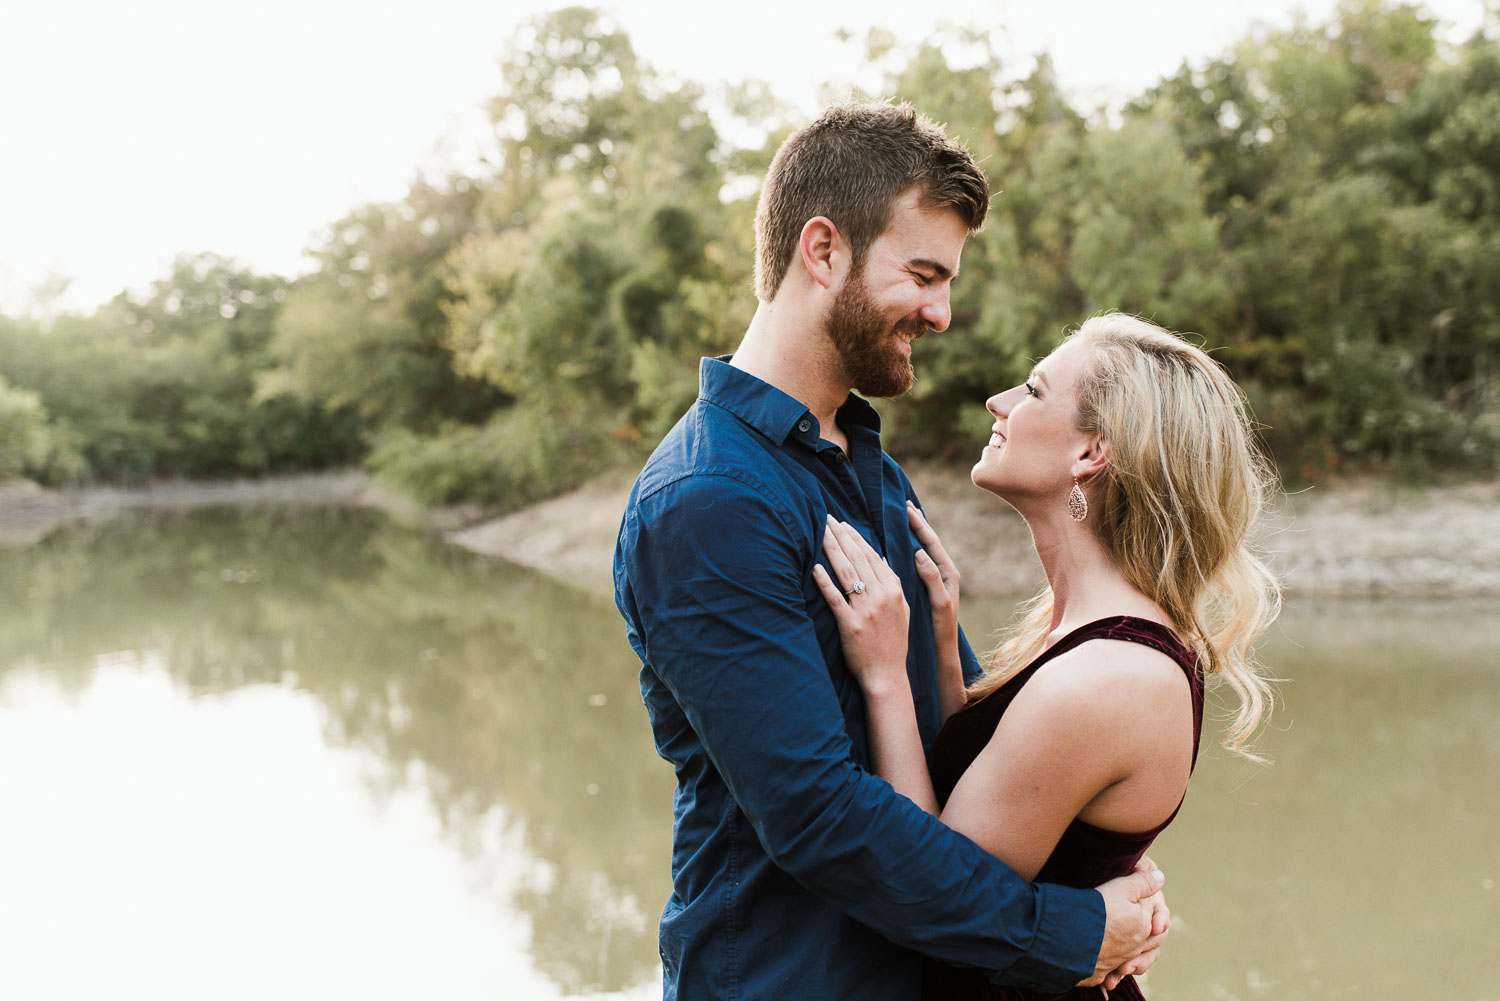 josh - lindsey - engagement - photos - alrington - texas - river - legacy - park-11.jpg